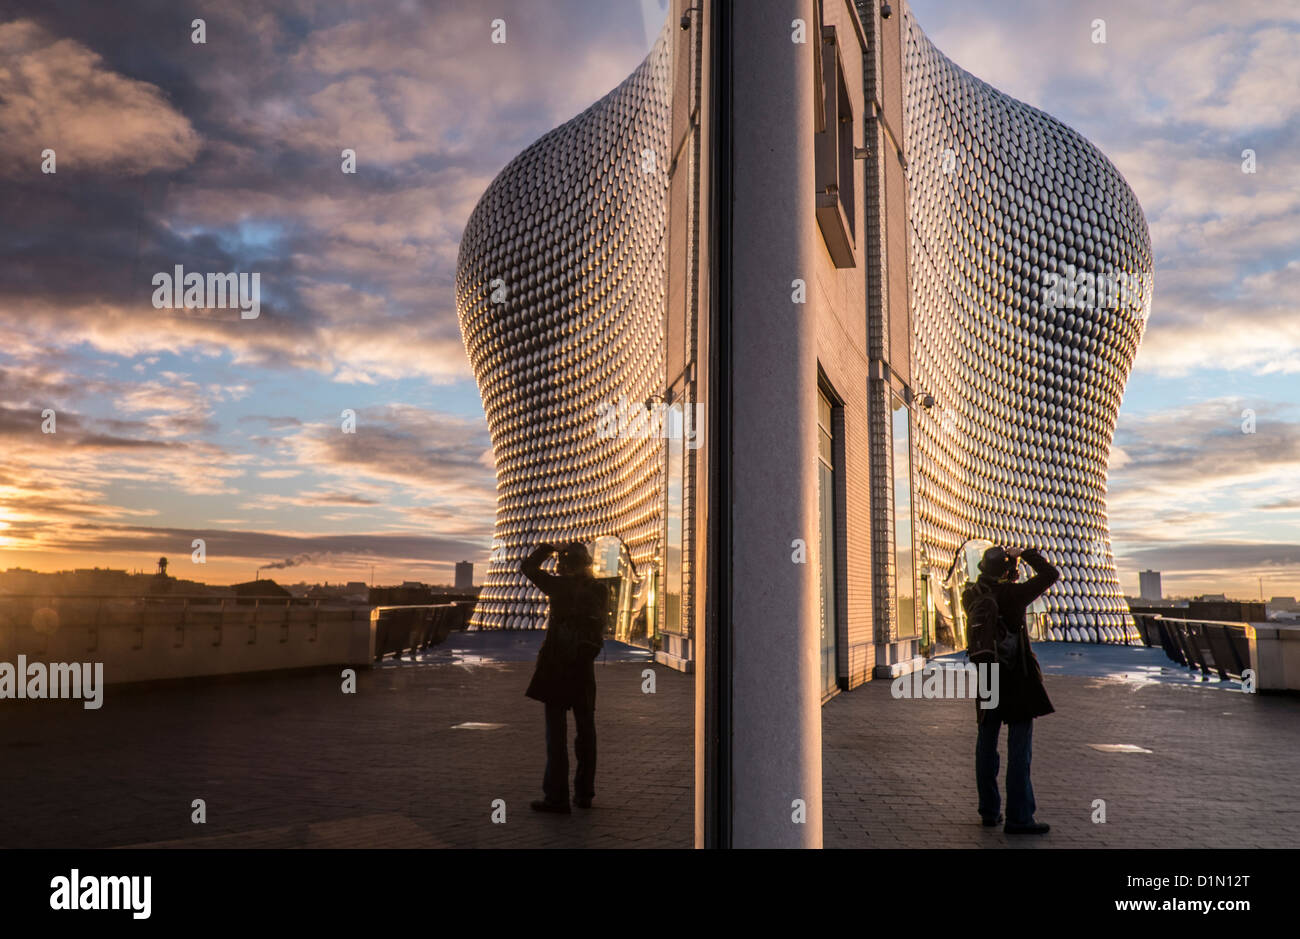 Early morning sunrise on the iconic Selfridges department store in Birminghams Bull Ring Shopping Centre, West Midlands, - Stock Image